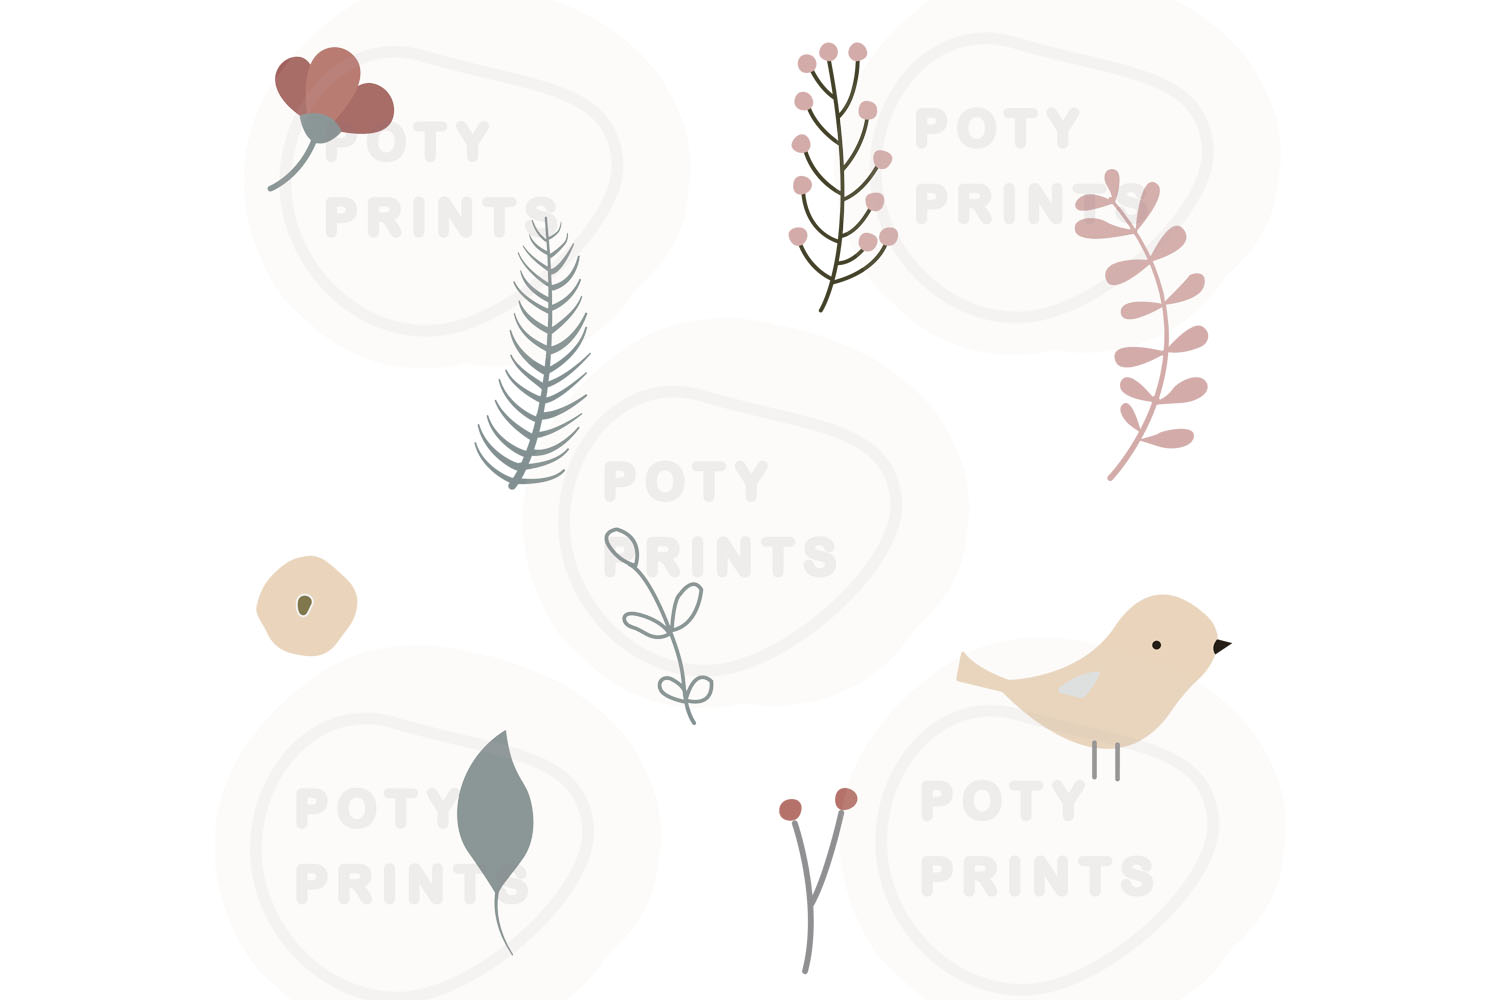 Laurel leaf clipart and bird set example image 1